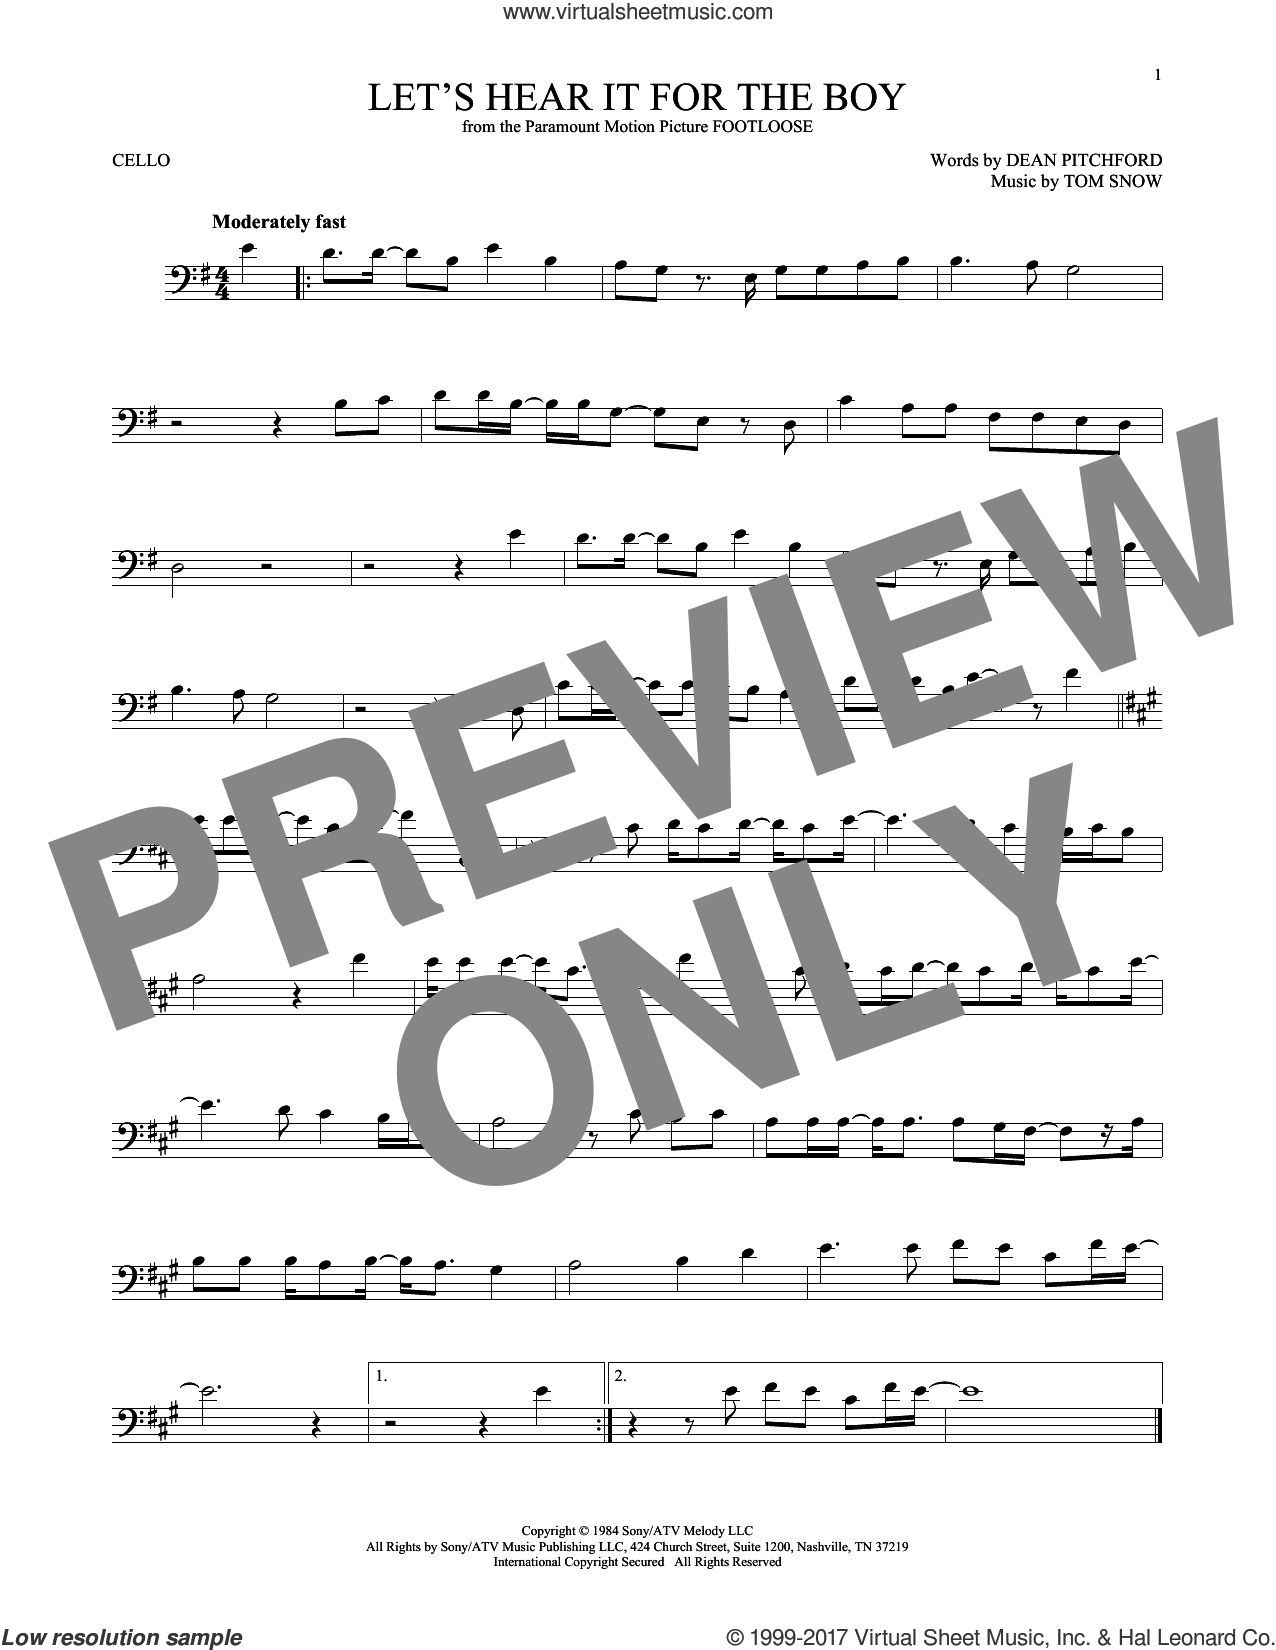 Let's Hear It For The Boy sheet music for cello solo by Deniece Williams, Dean Pitchford and Tom Snow, intermediate skill level